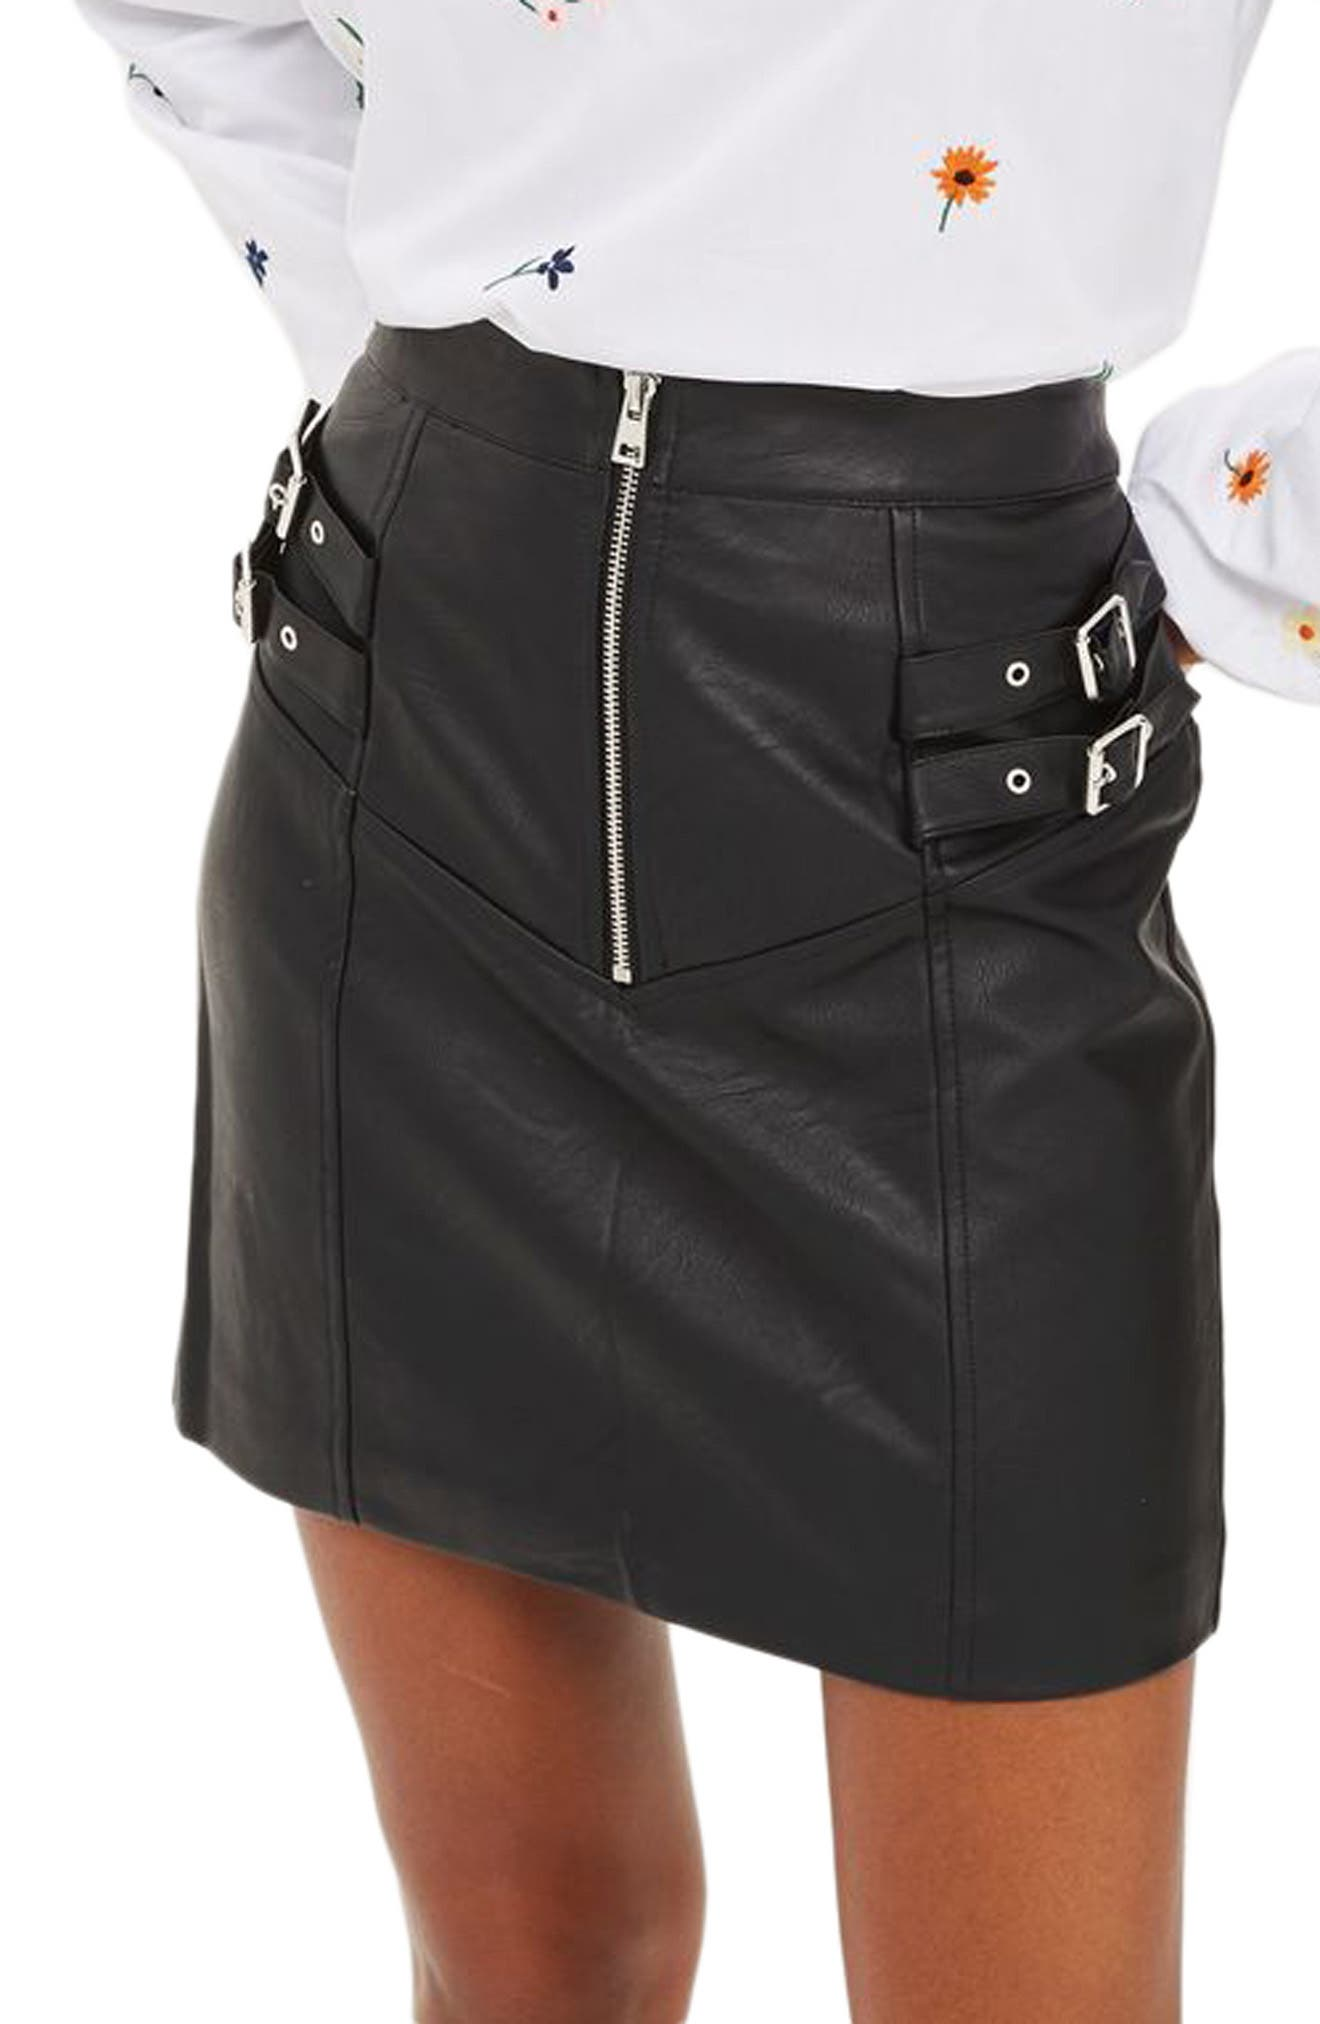 Alternate Image 1 Selected - Topshop Double Buckle Faux Leather Miniskirt